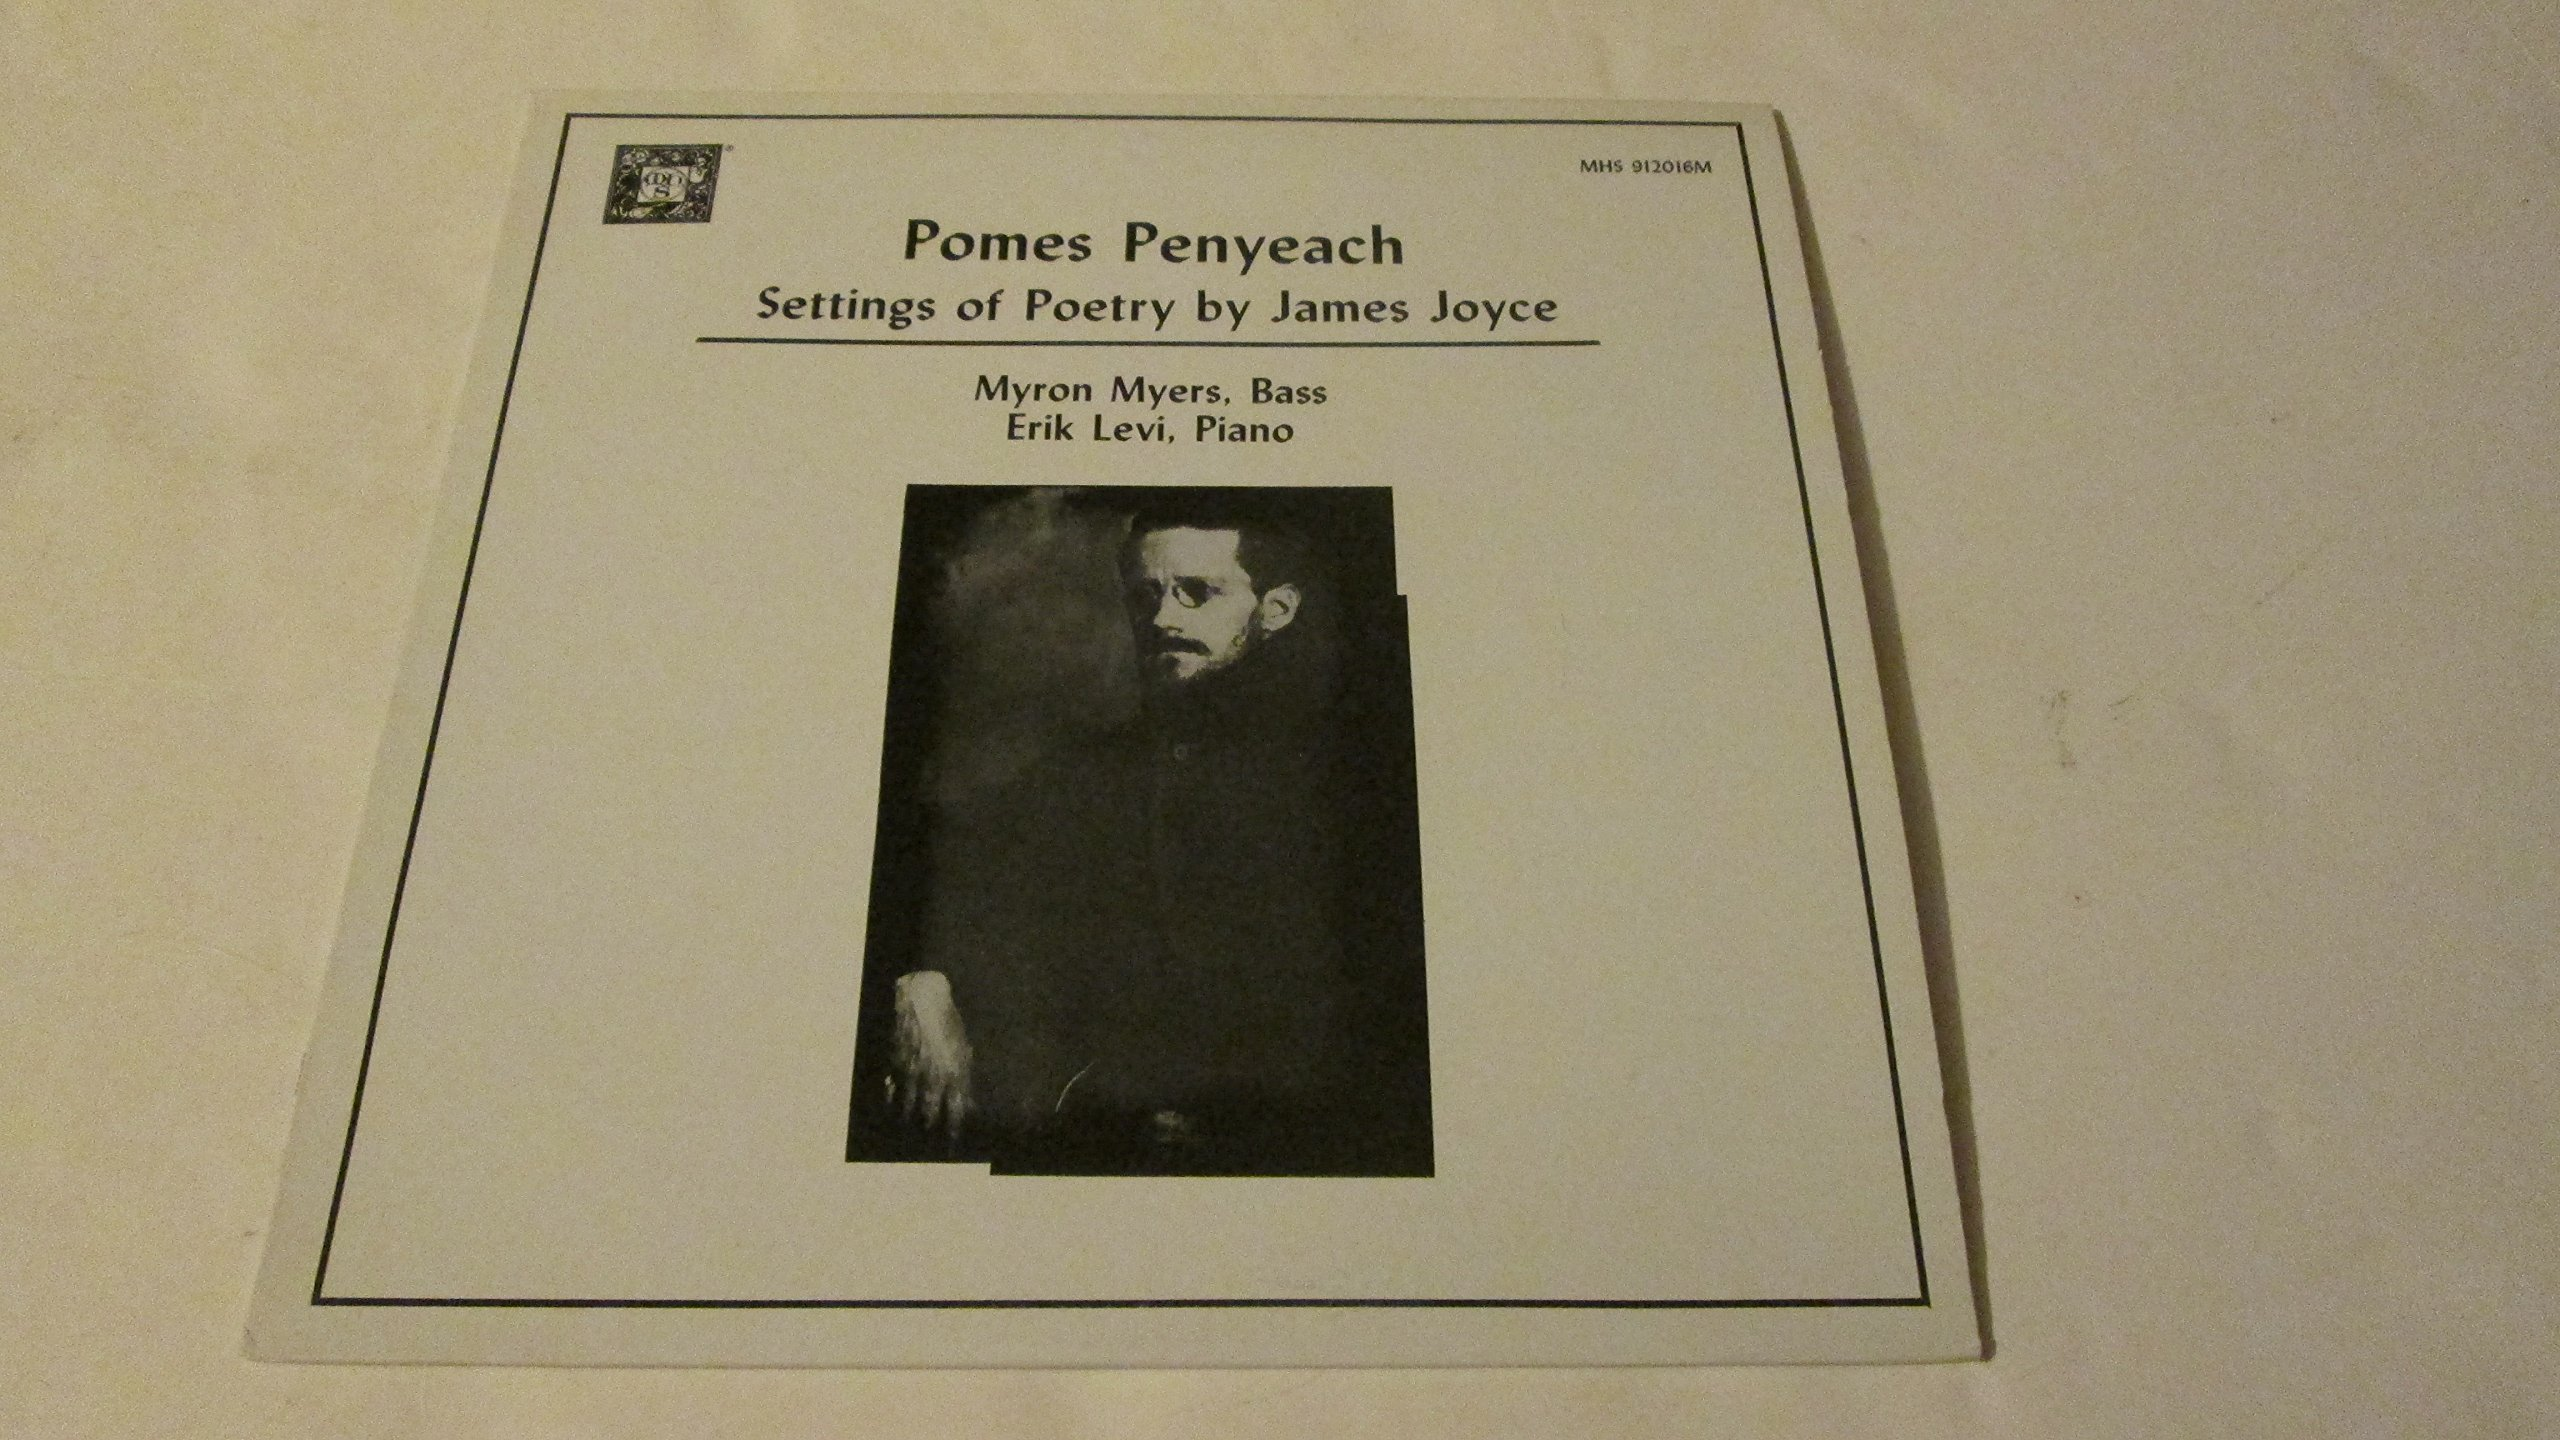 Pomes Penyeach - Settings of Poetry by James Joyce